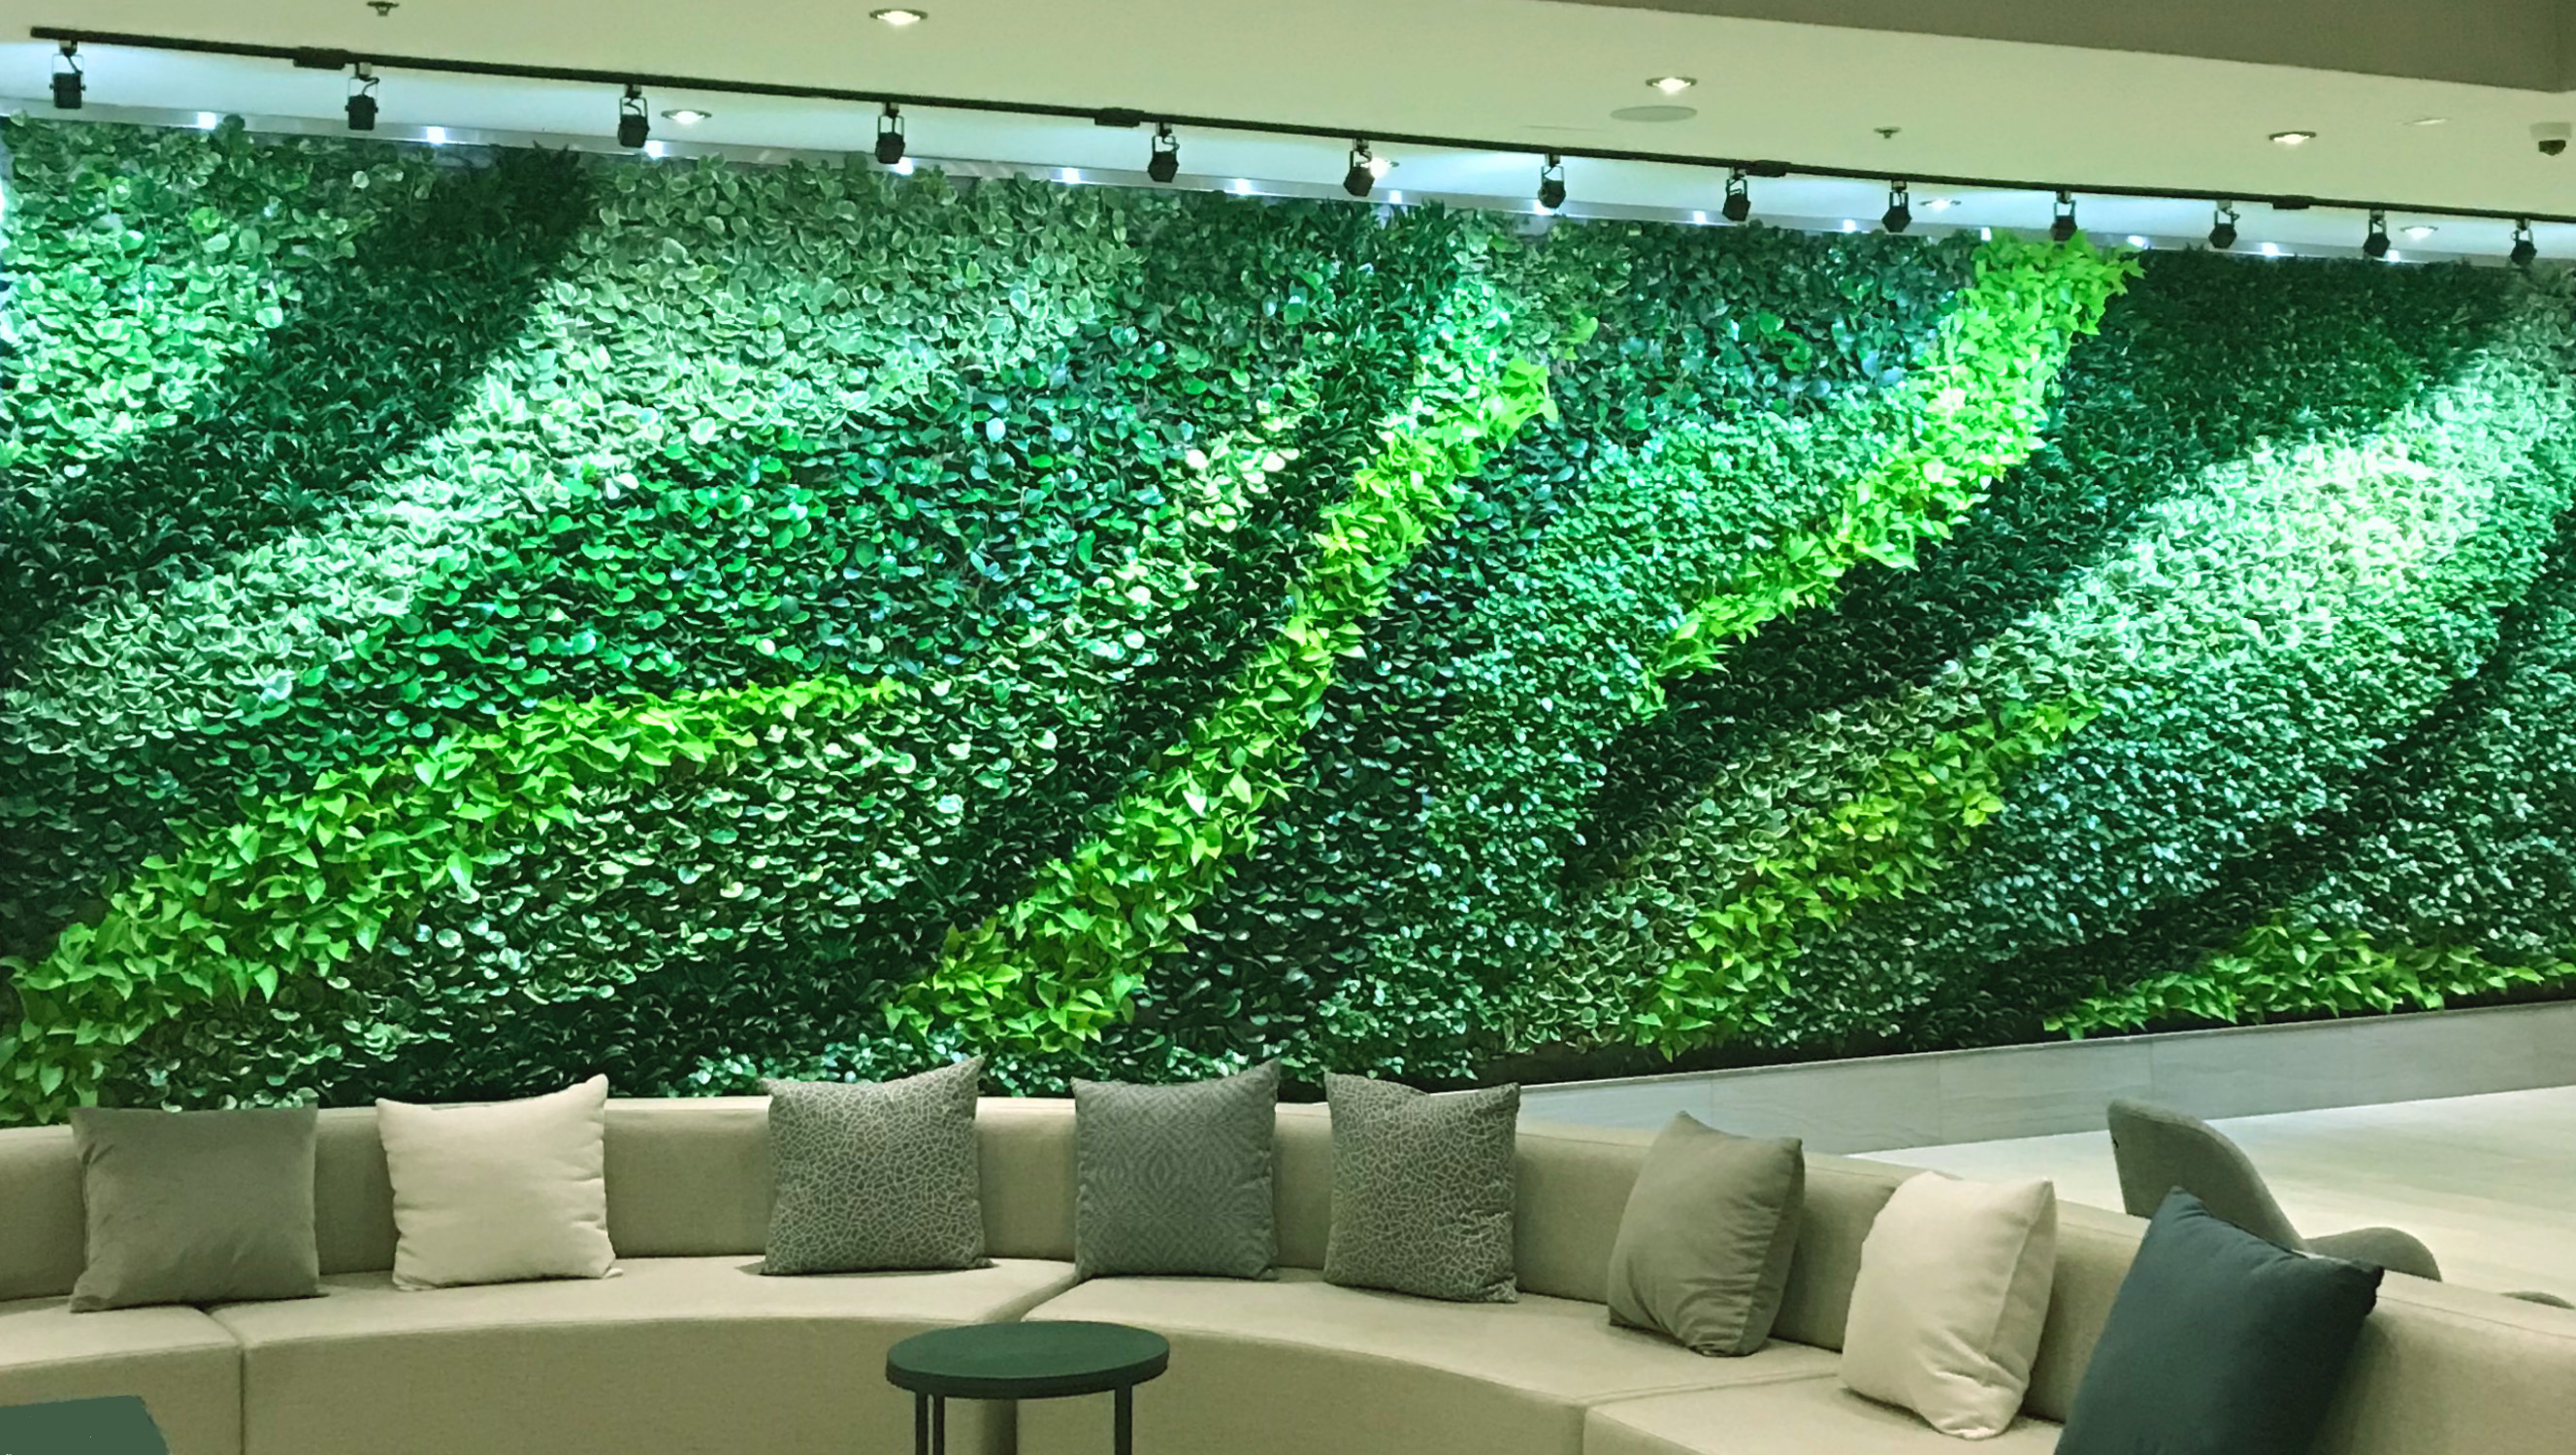 Living Wall Systems Canada Vertical Oxygen